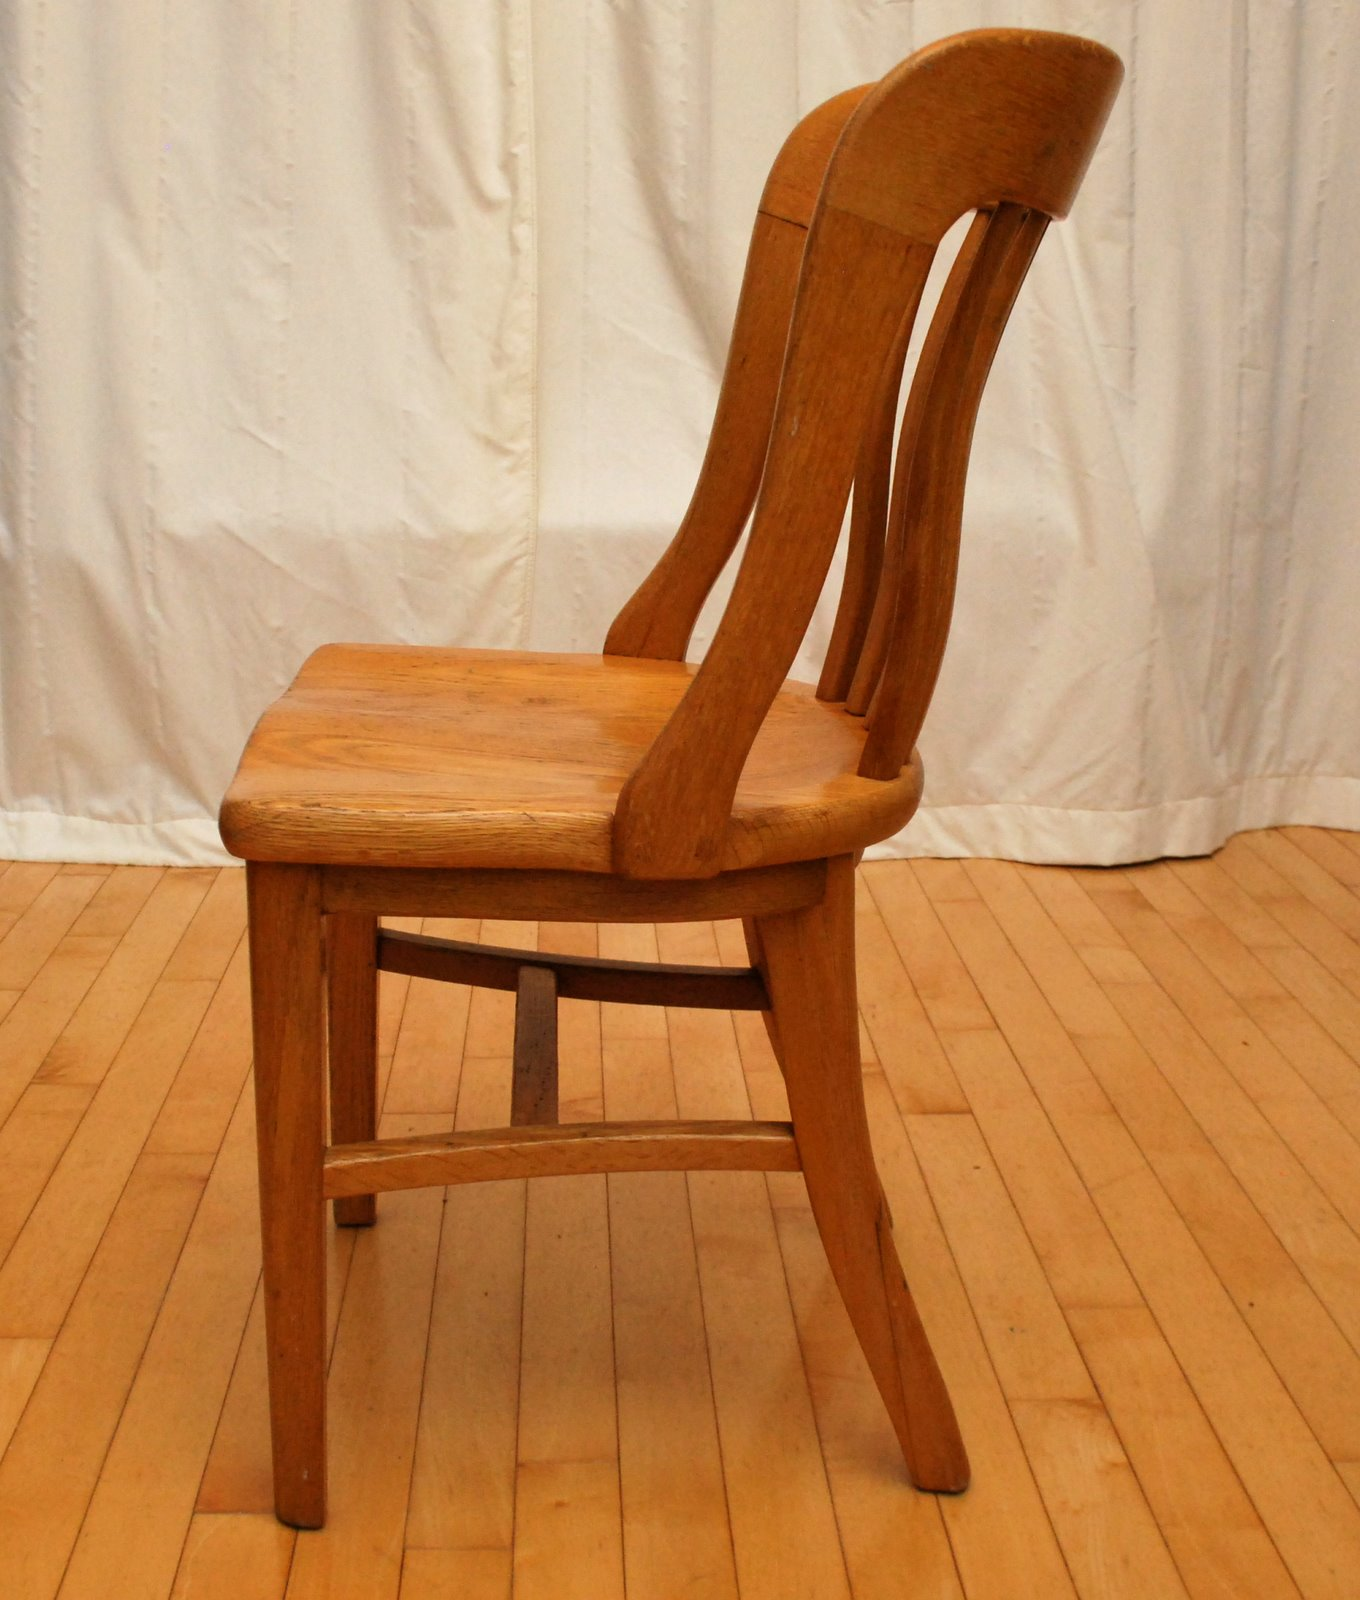 Krug Furniture Kitchener Tribute 20th Decor 1940s Oak Office Chairs